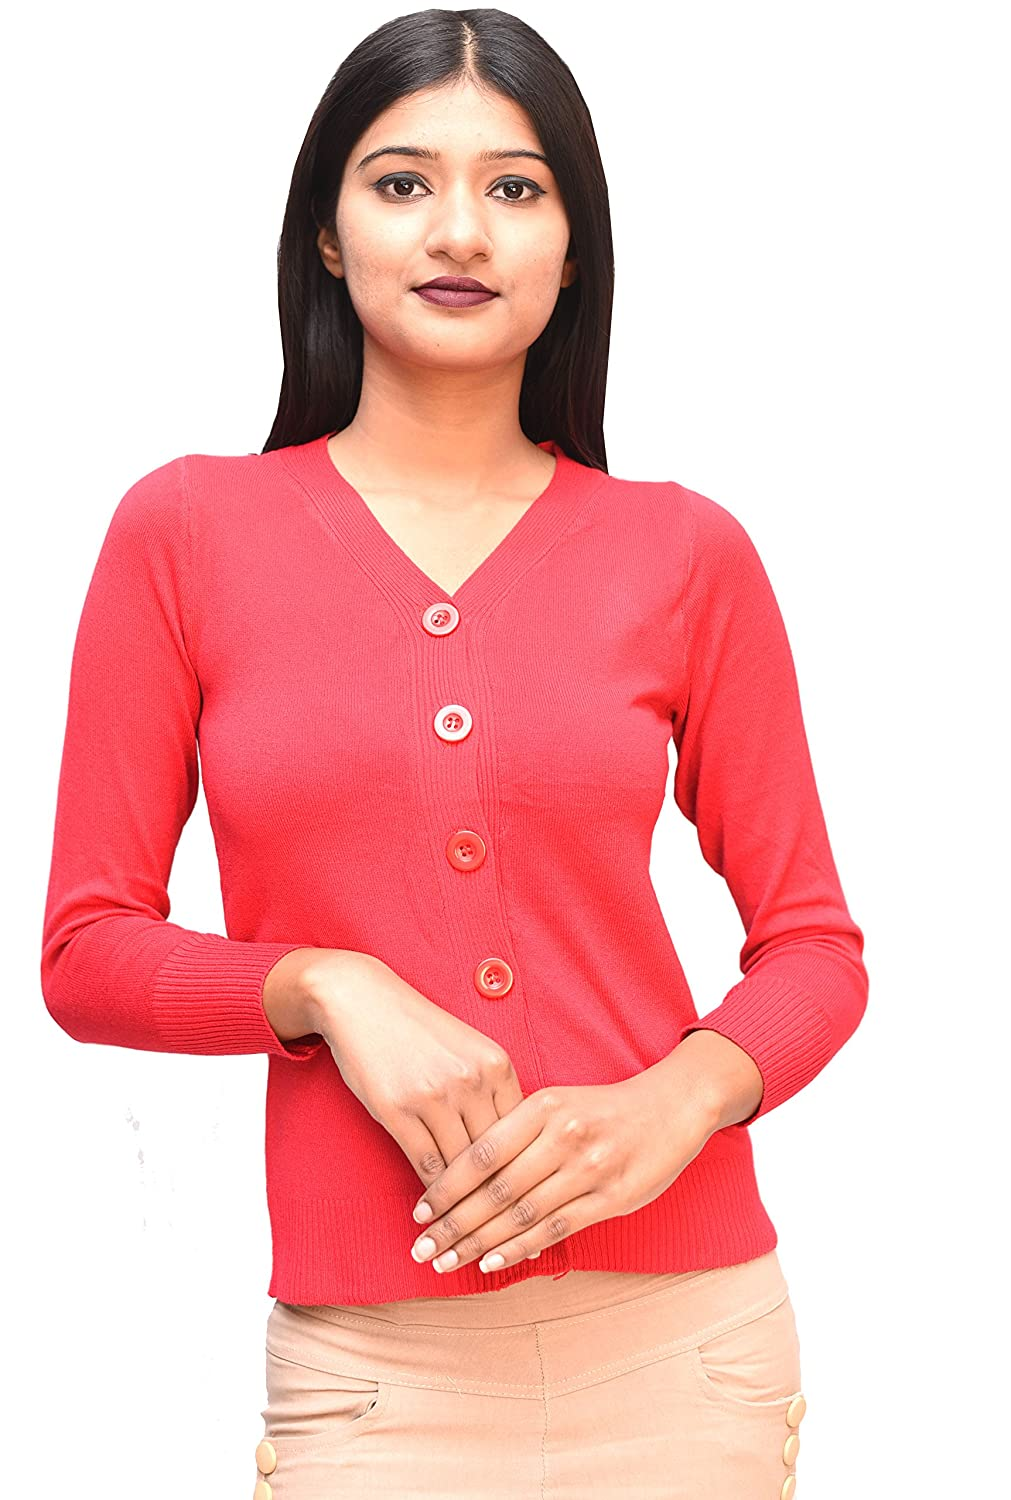 df87250d36af1b Otia 6 Button Woolen Blouse - Red Cardigan for Women Ladies Girls - Stylish  Winter Wear Sweater for Saree Jeans - Free Size 3/4 Sleeve Party Top:  Amazon.in: ...